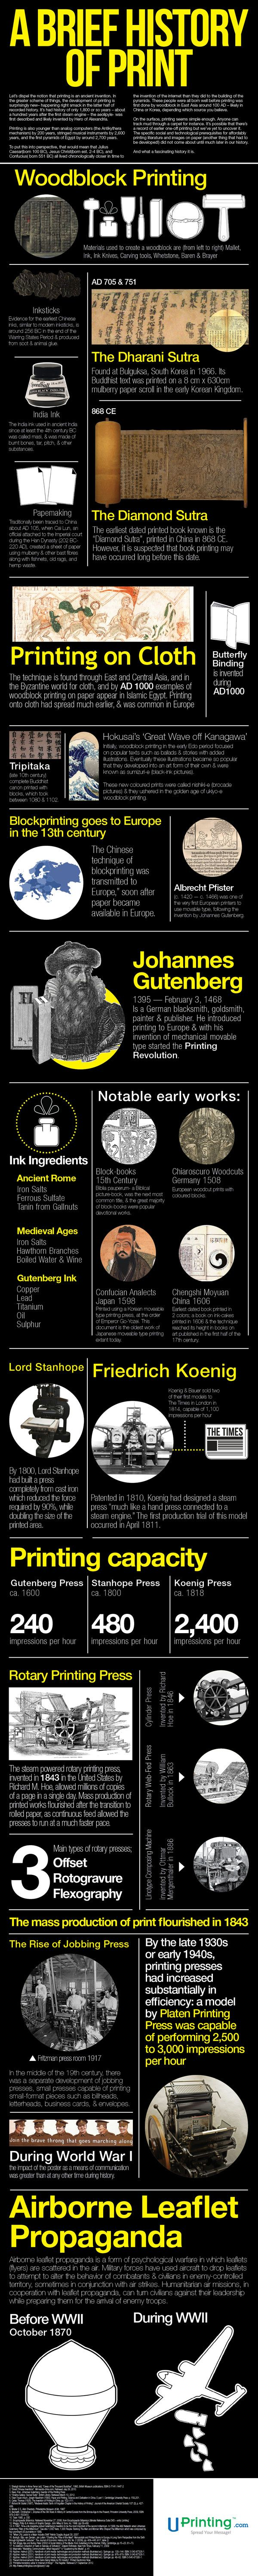 Free High Resolution Textures - Lost and Taken - Fun Infographic – A Brief History ofPrint